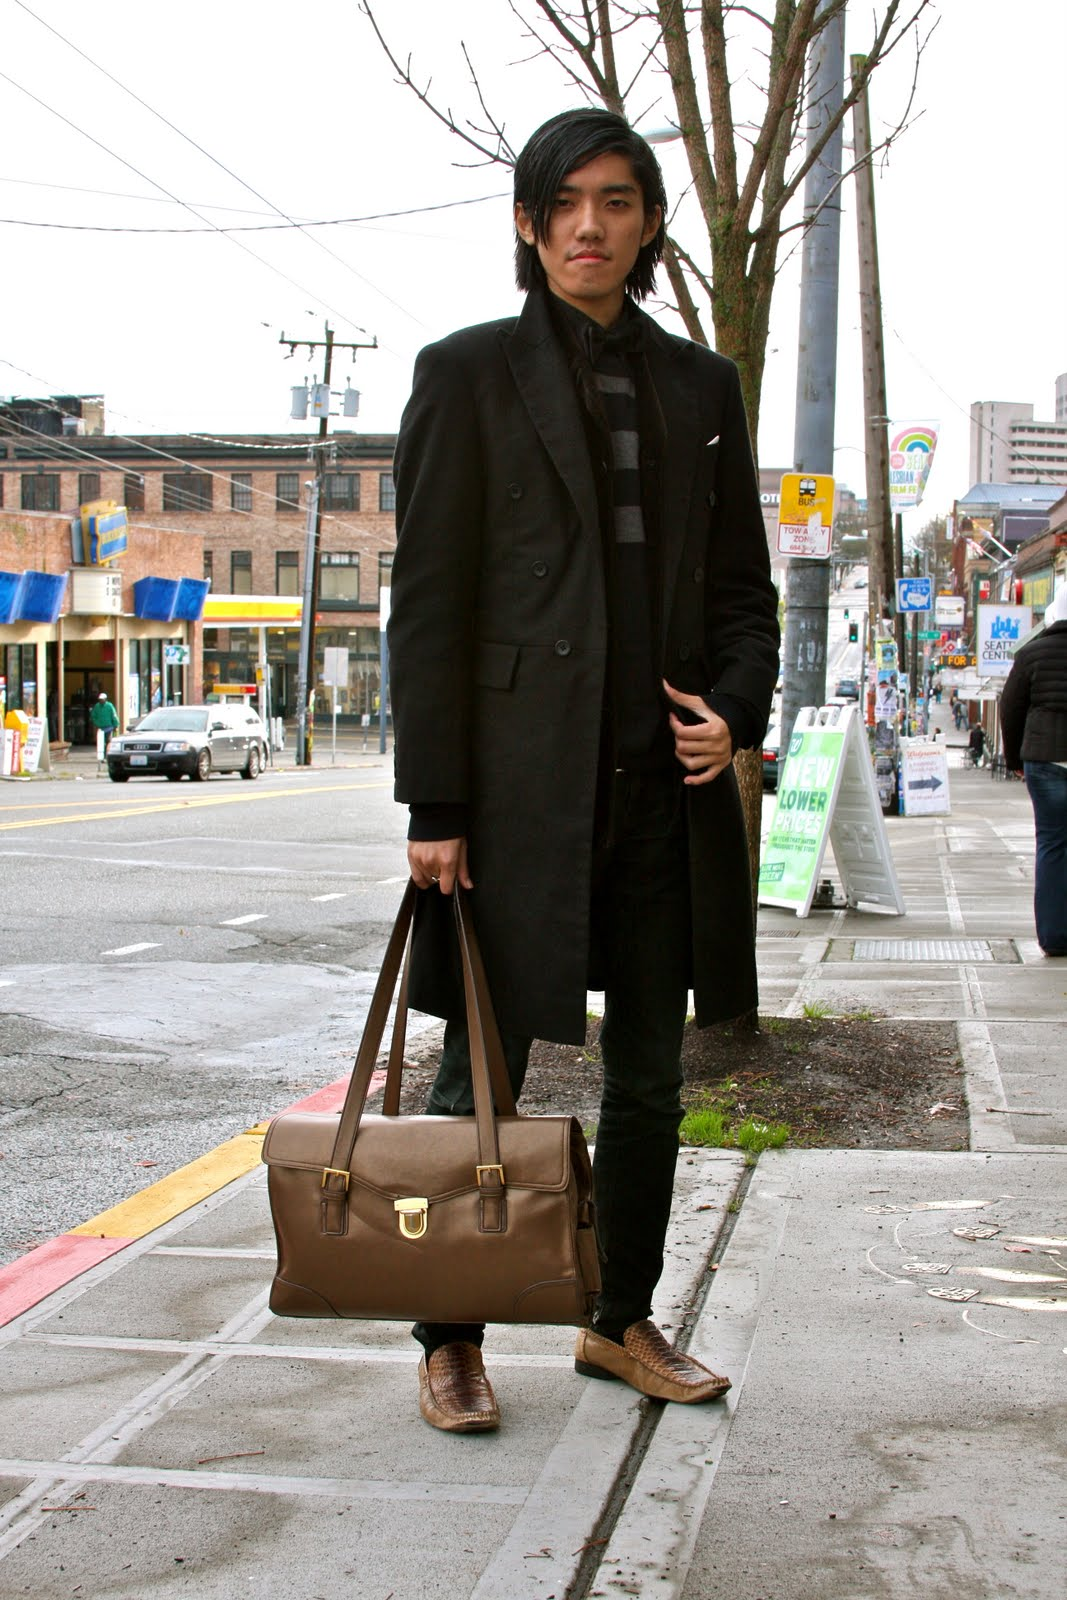 Dio, University of Washington Student wears an all black and brown ensemble featuring a black tailored peacoat over a black shirt with a black bowtie and a grey and black striped sweater; black jeans and a pocket knife; brown bag and brown reptile leather loafers.